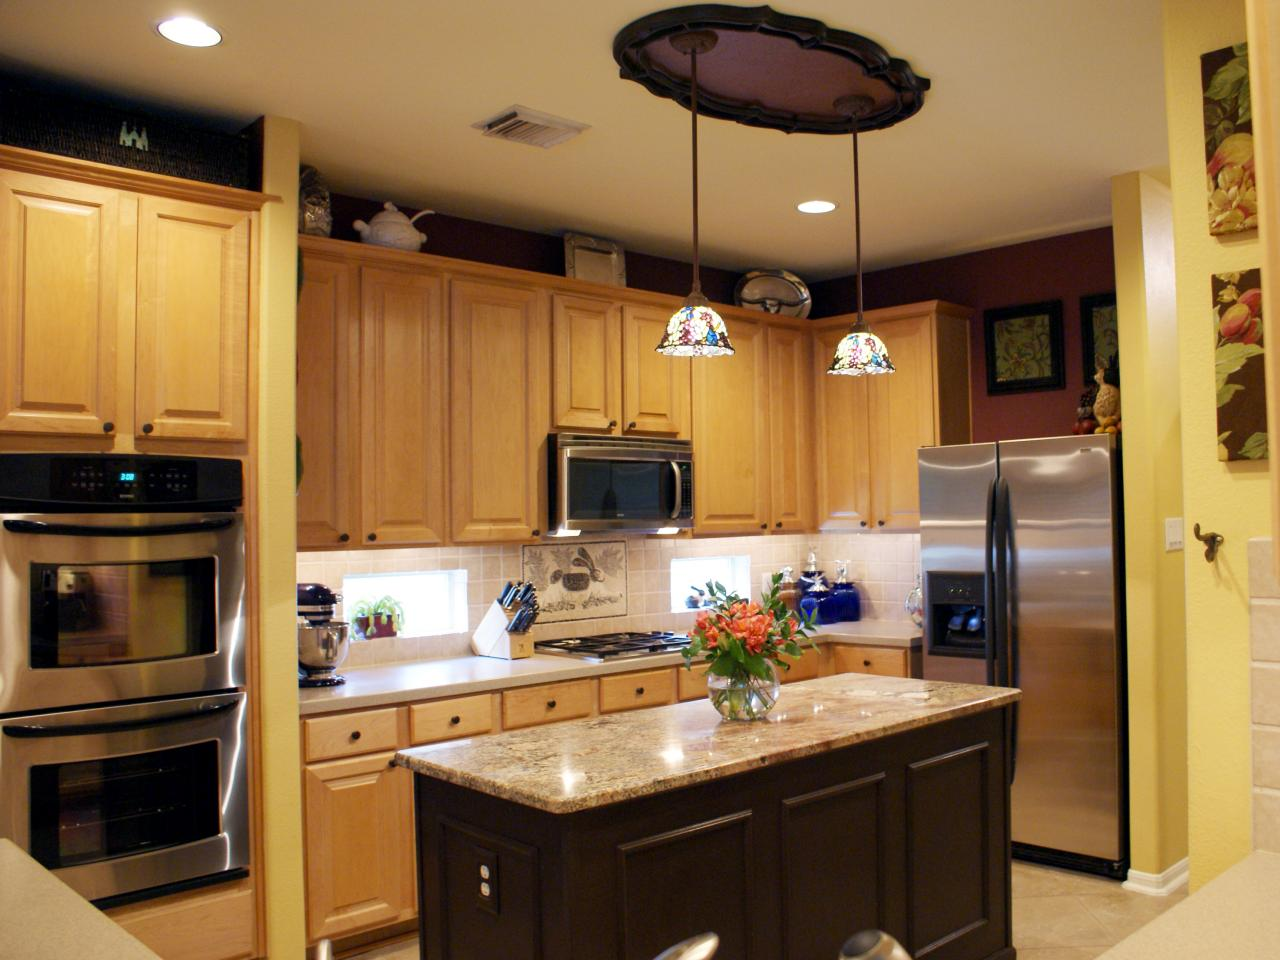 wonderful How Much Does It Cost To Replace Cabinets In Kitchen #1: Cabinets: Should You Replace or Reface?